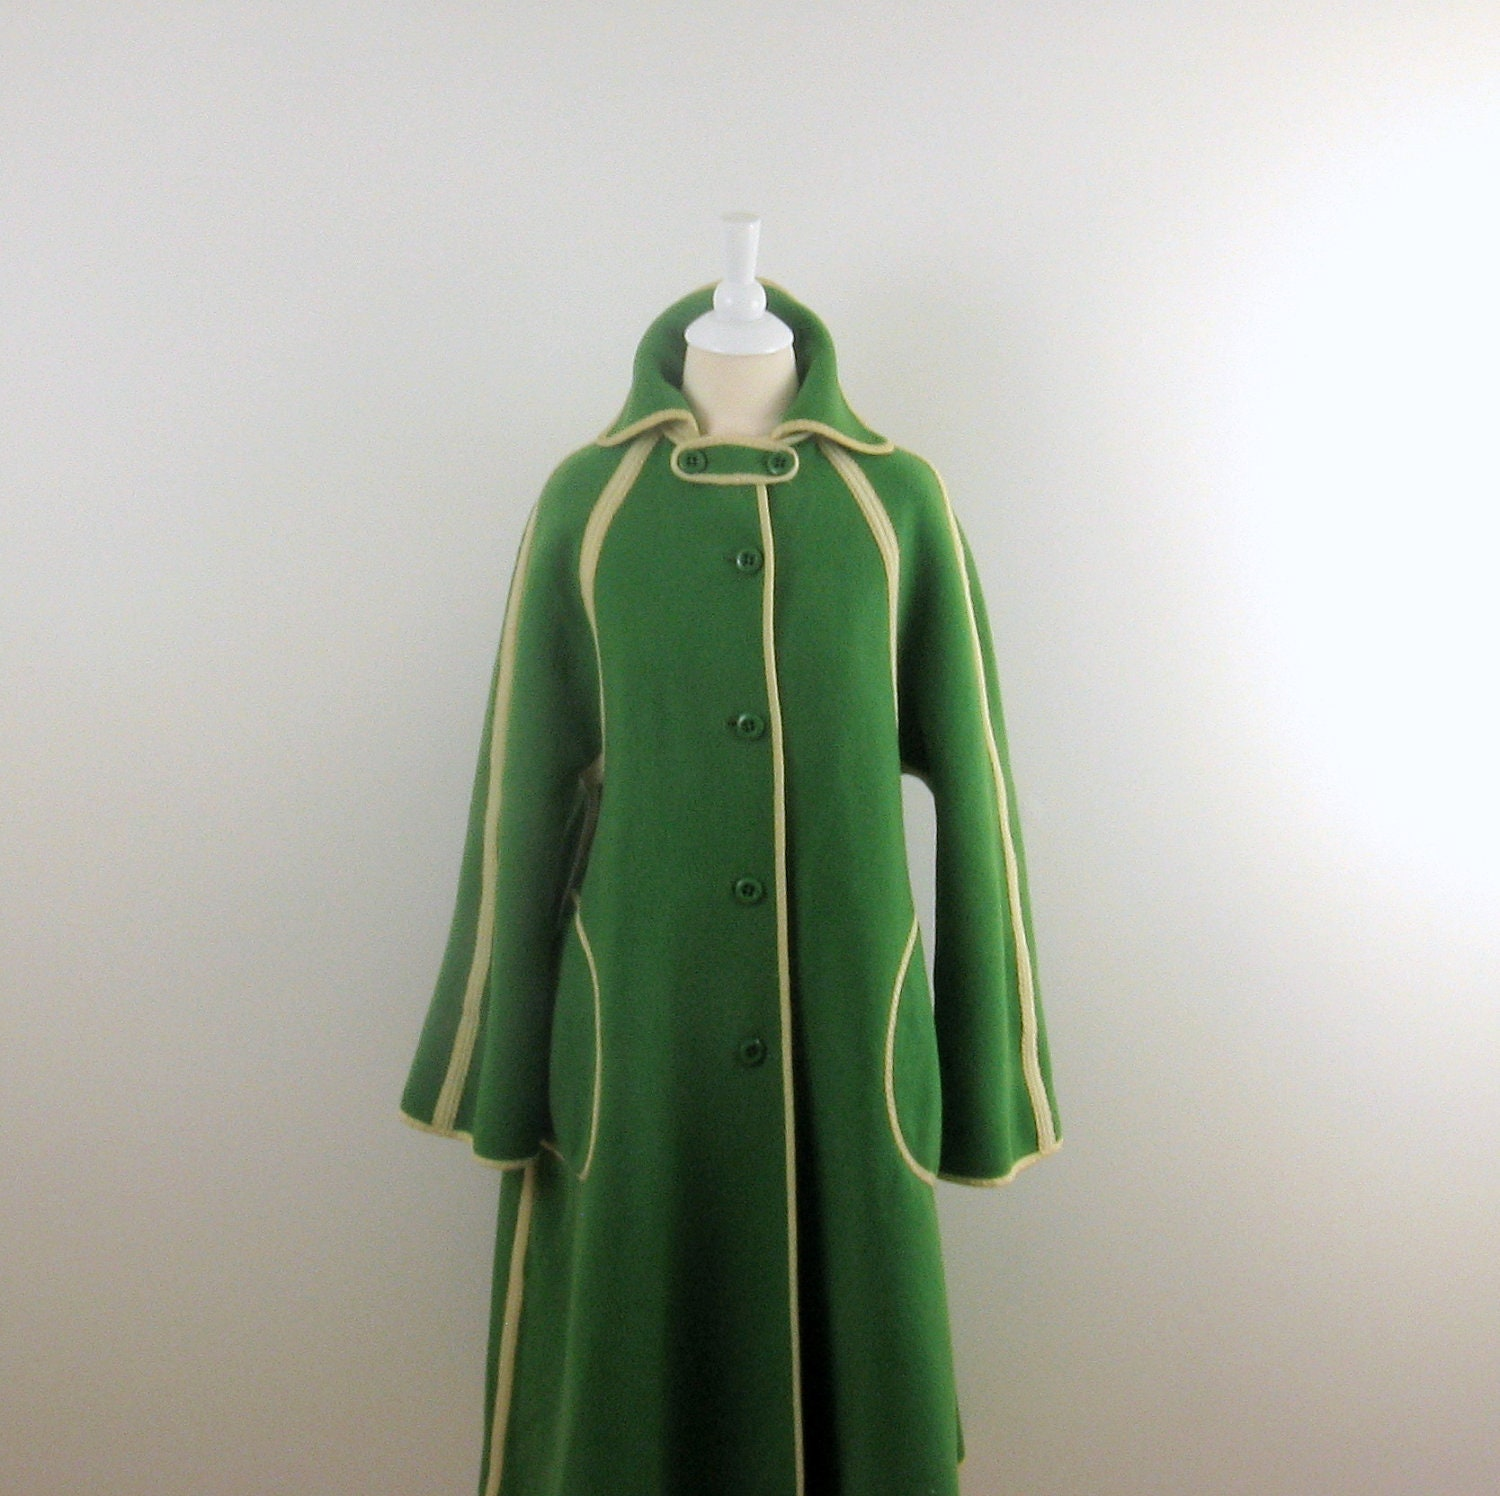 Vintage Winter Coat - 1970s Wool in Apple Green - Reversible - Medium by Wetherall